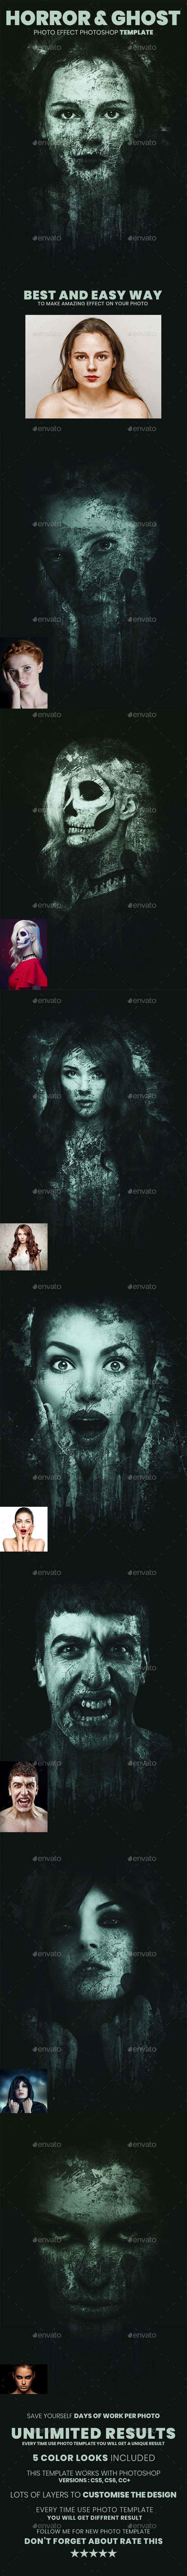 Horror & Ghost Photo Effect Photoshop Template - Artistic Photo Templates